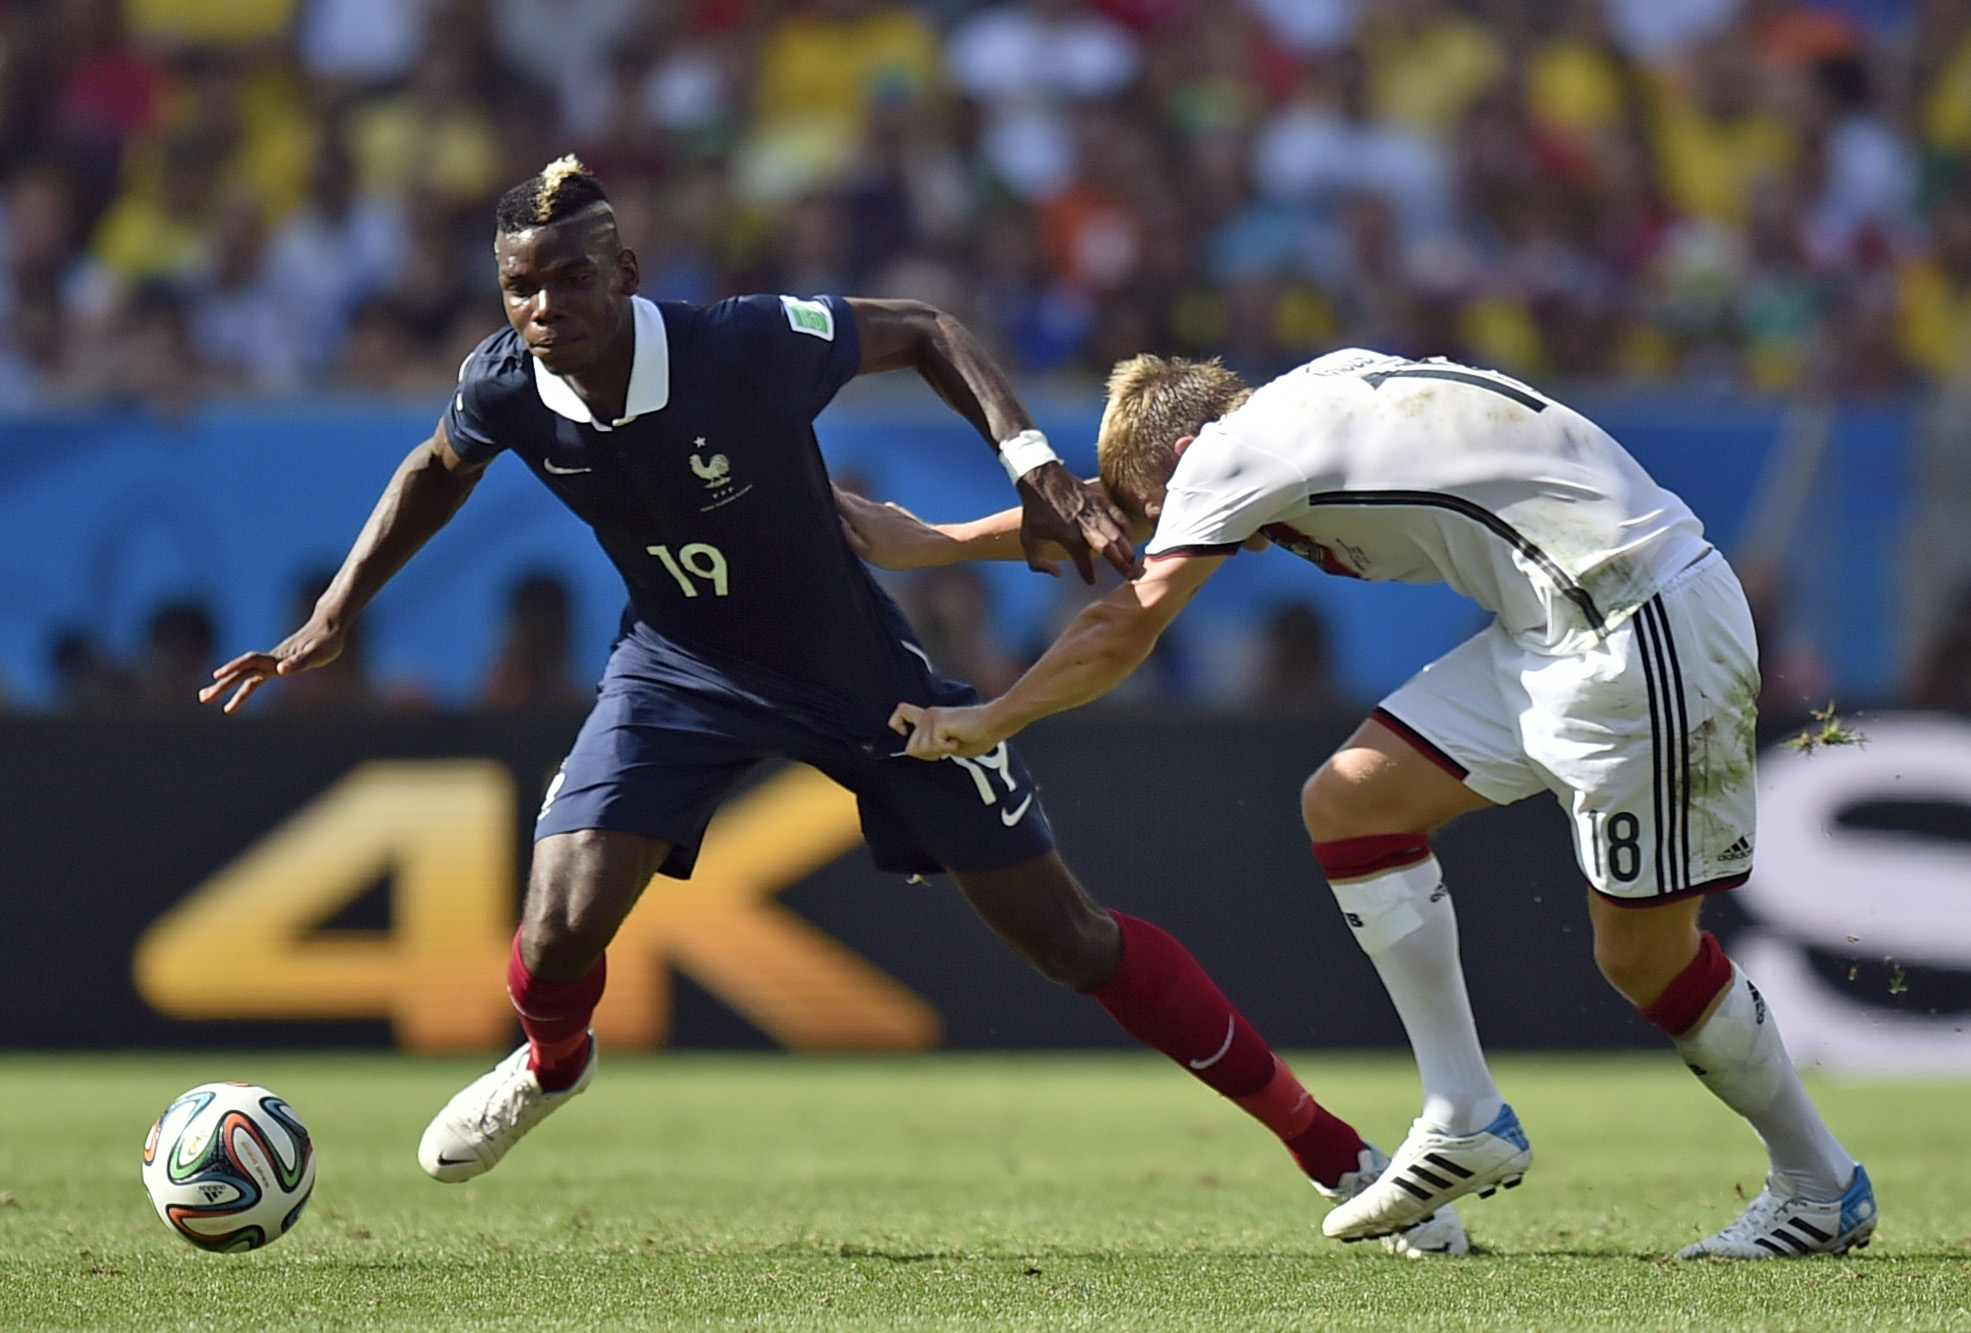 France's Paul Pogba, left, is challenged by Germany's Toni Kroos during the World Cup quarterfinal soccer match between Germany and France at the Maracana Stadium in Rio de Janeiro, Brazil, Friday, July 4, 2014